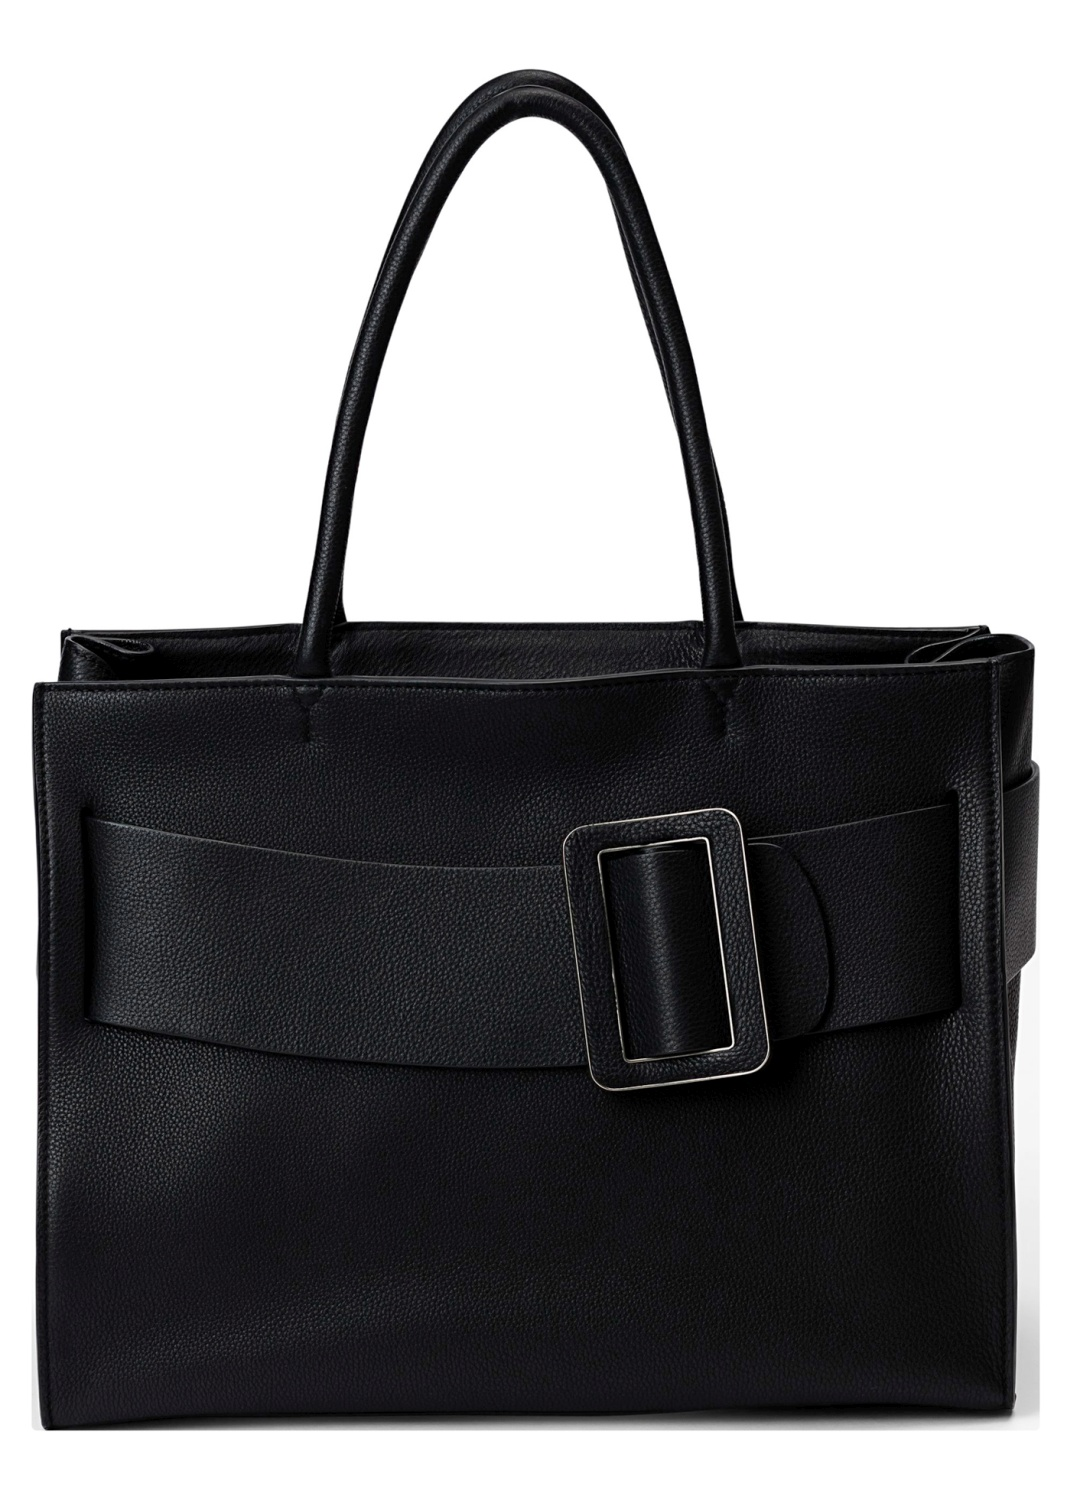 BOBBY SOFT Tote image number 0